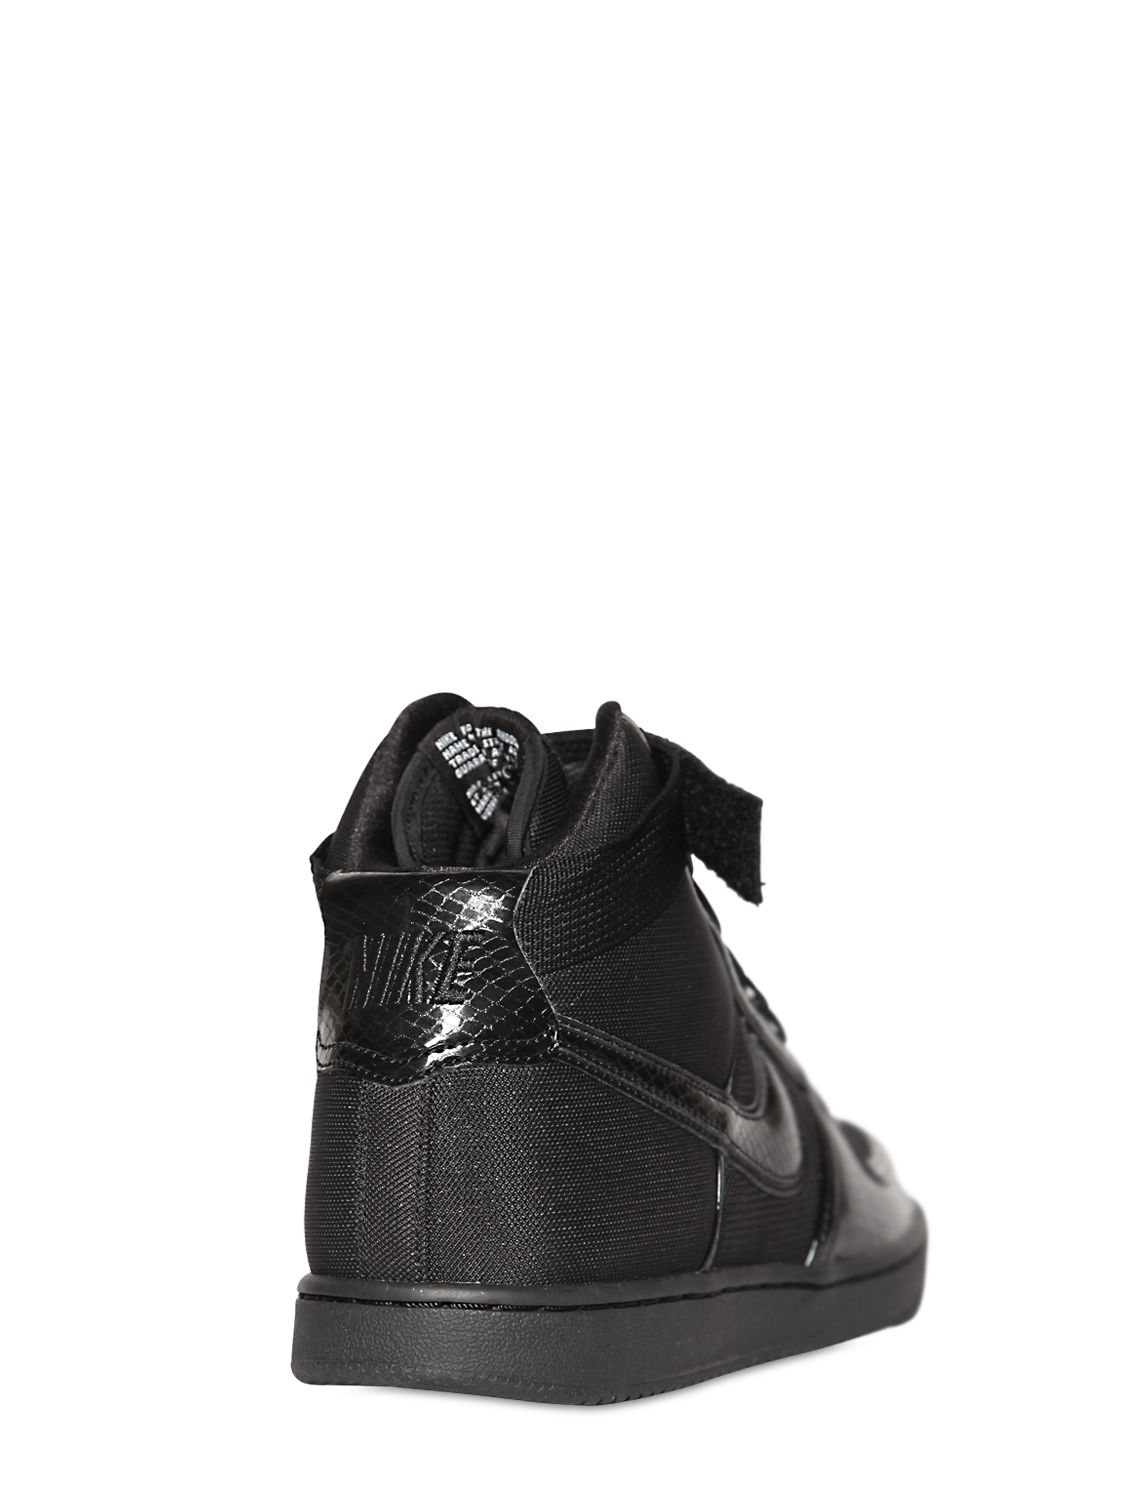 nike vandal high top sneakers in black for lyst